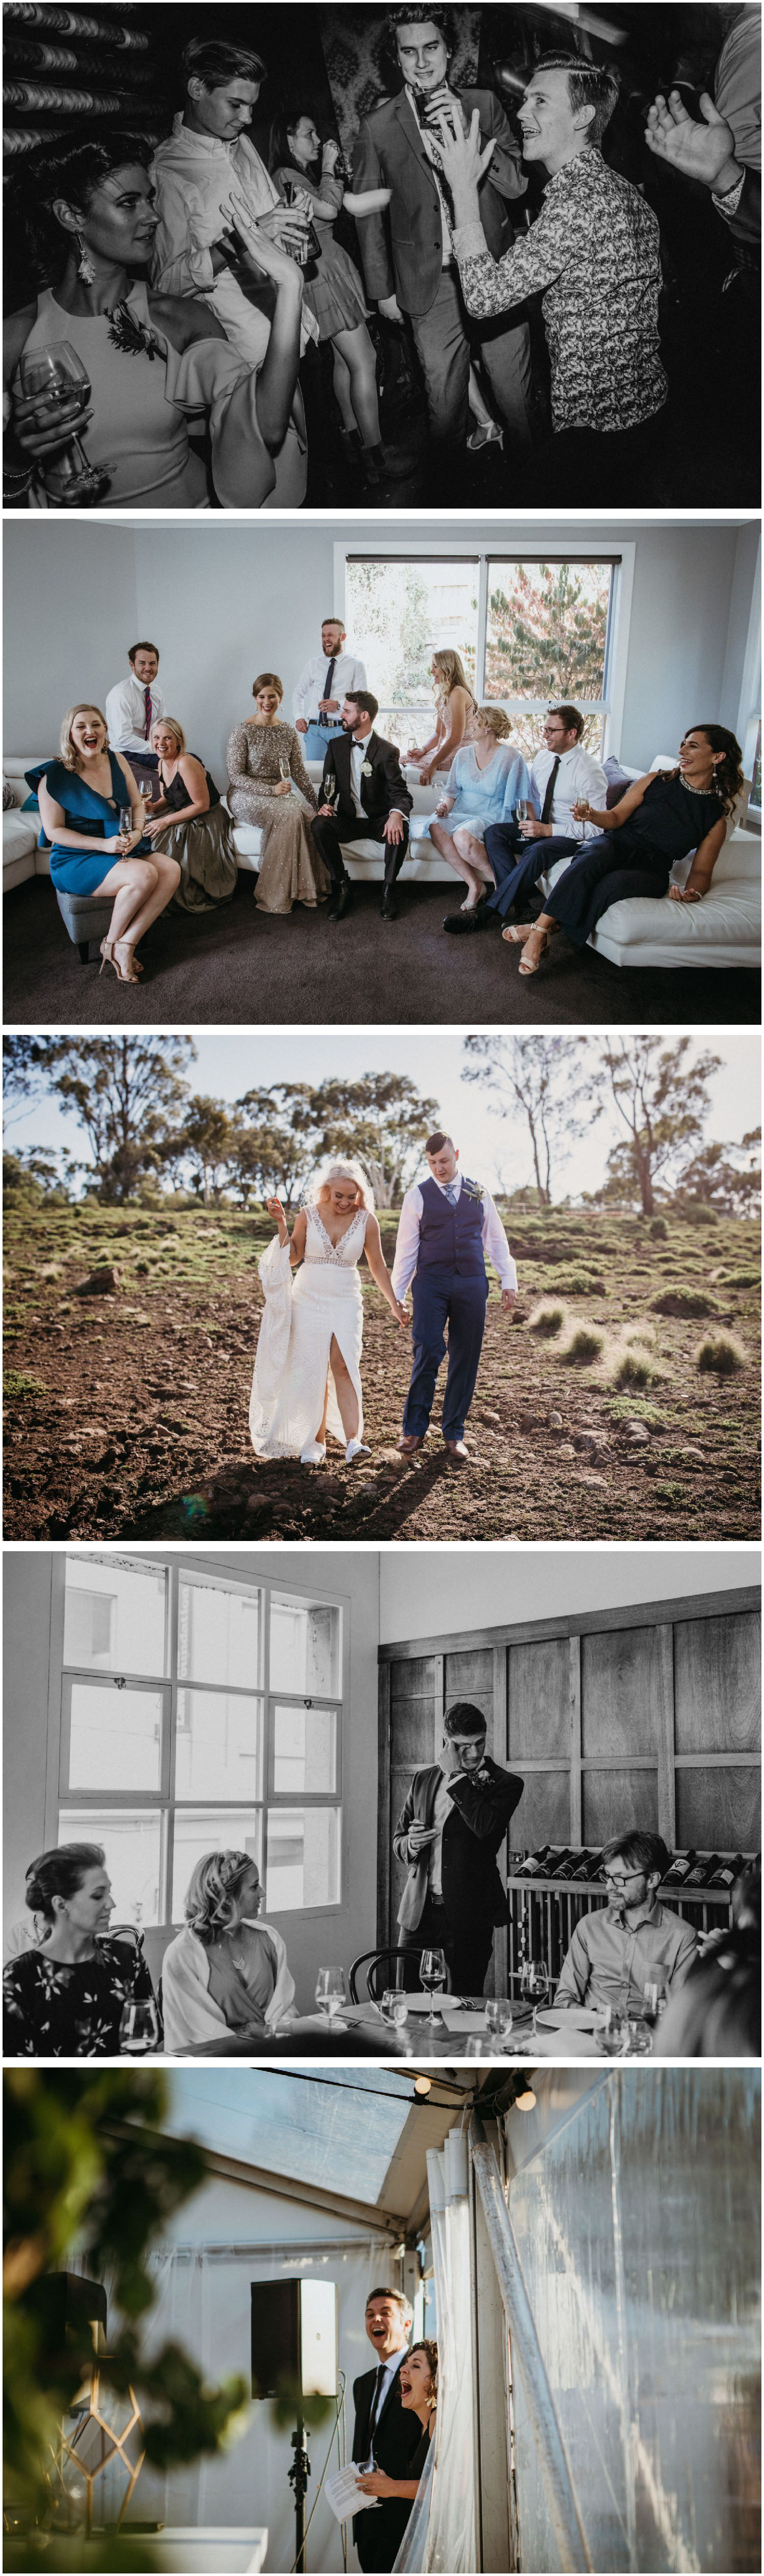 Melbourne Wedding Photographer - 2018 in review -185A7240.jpg